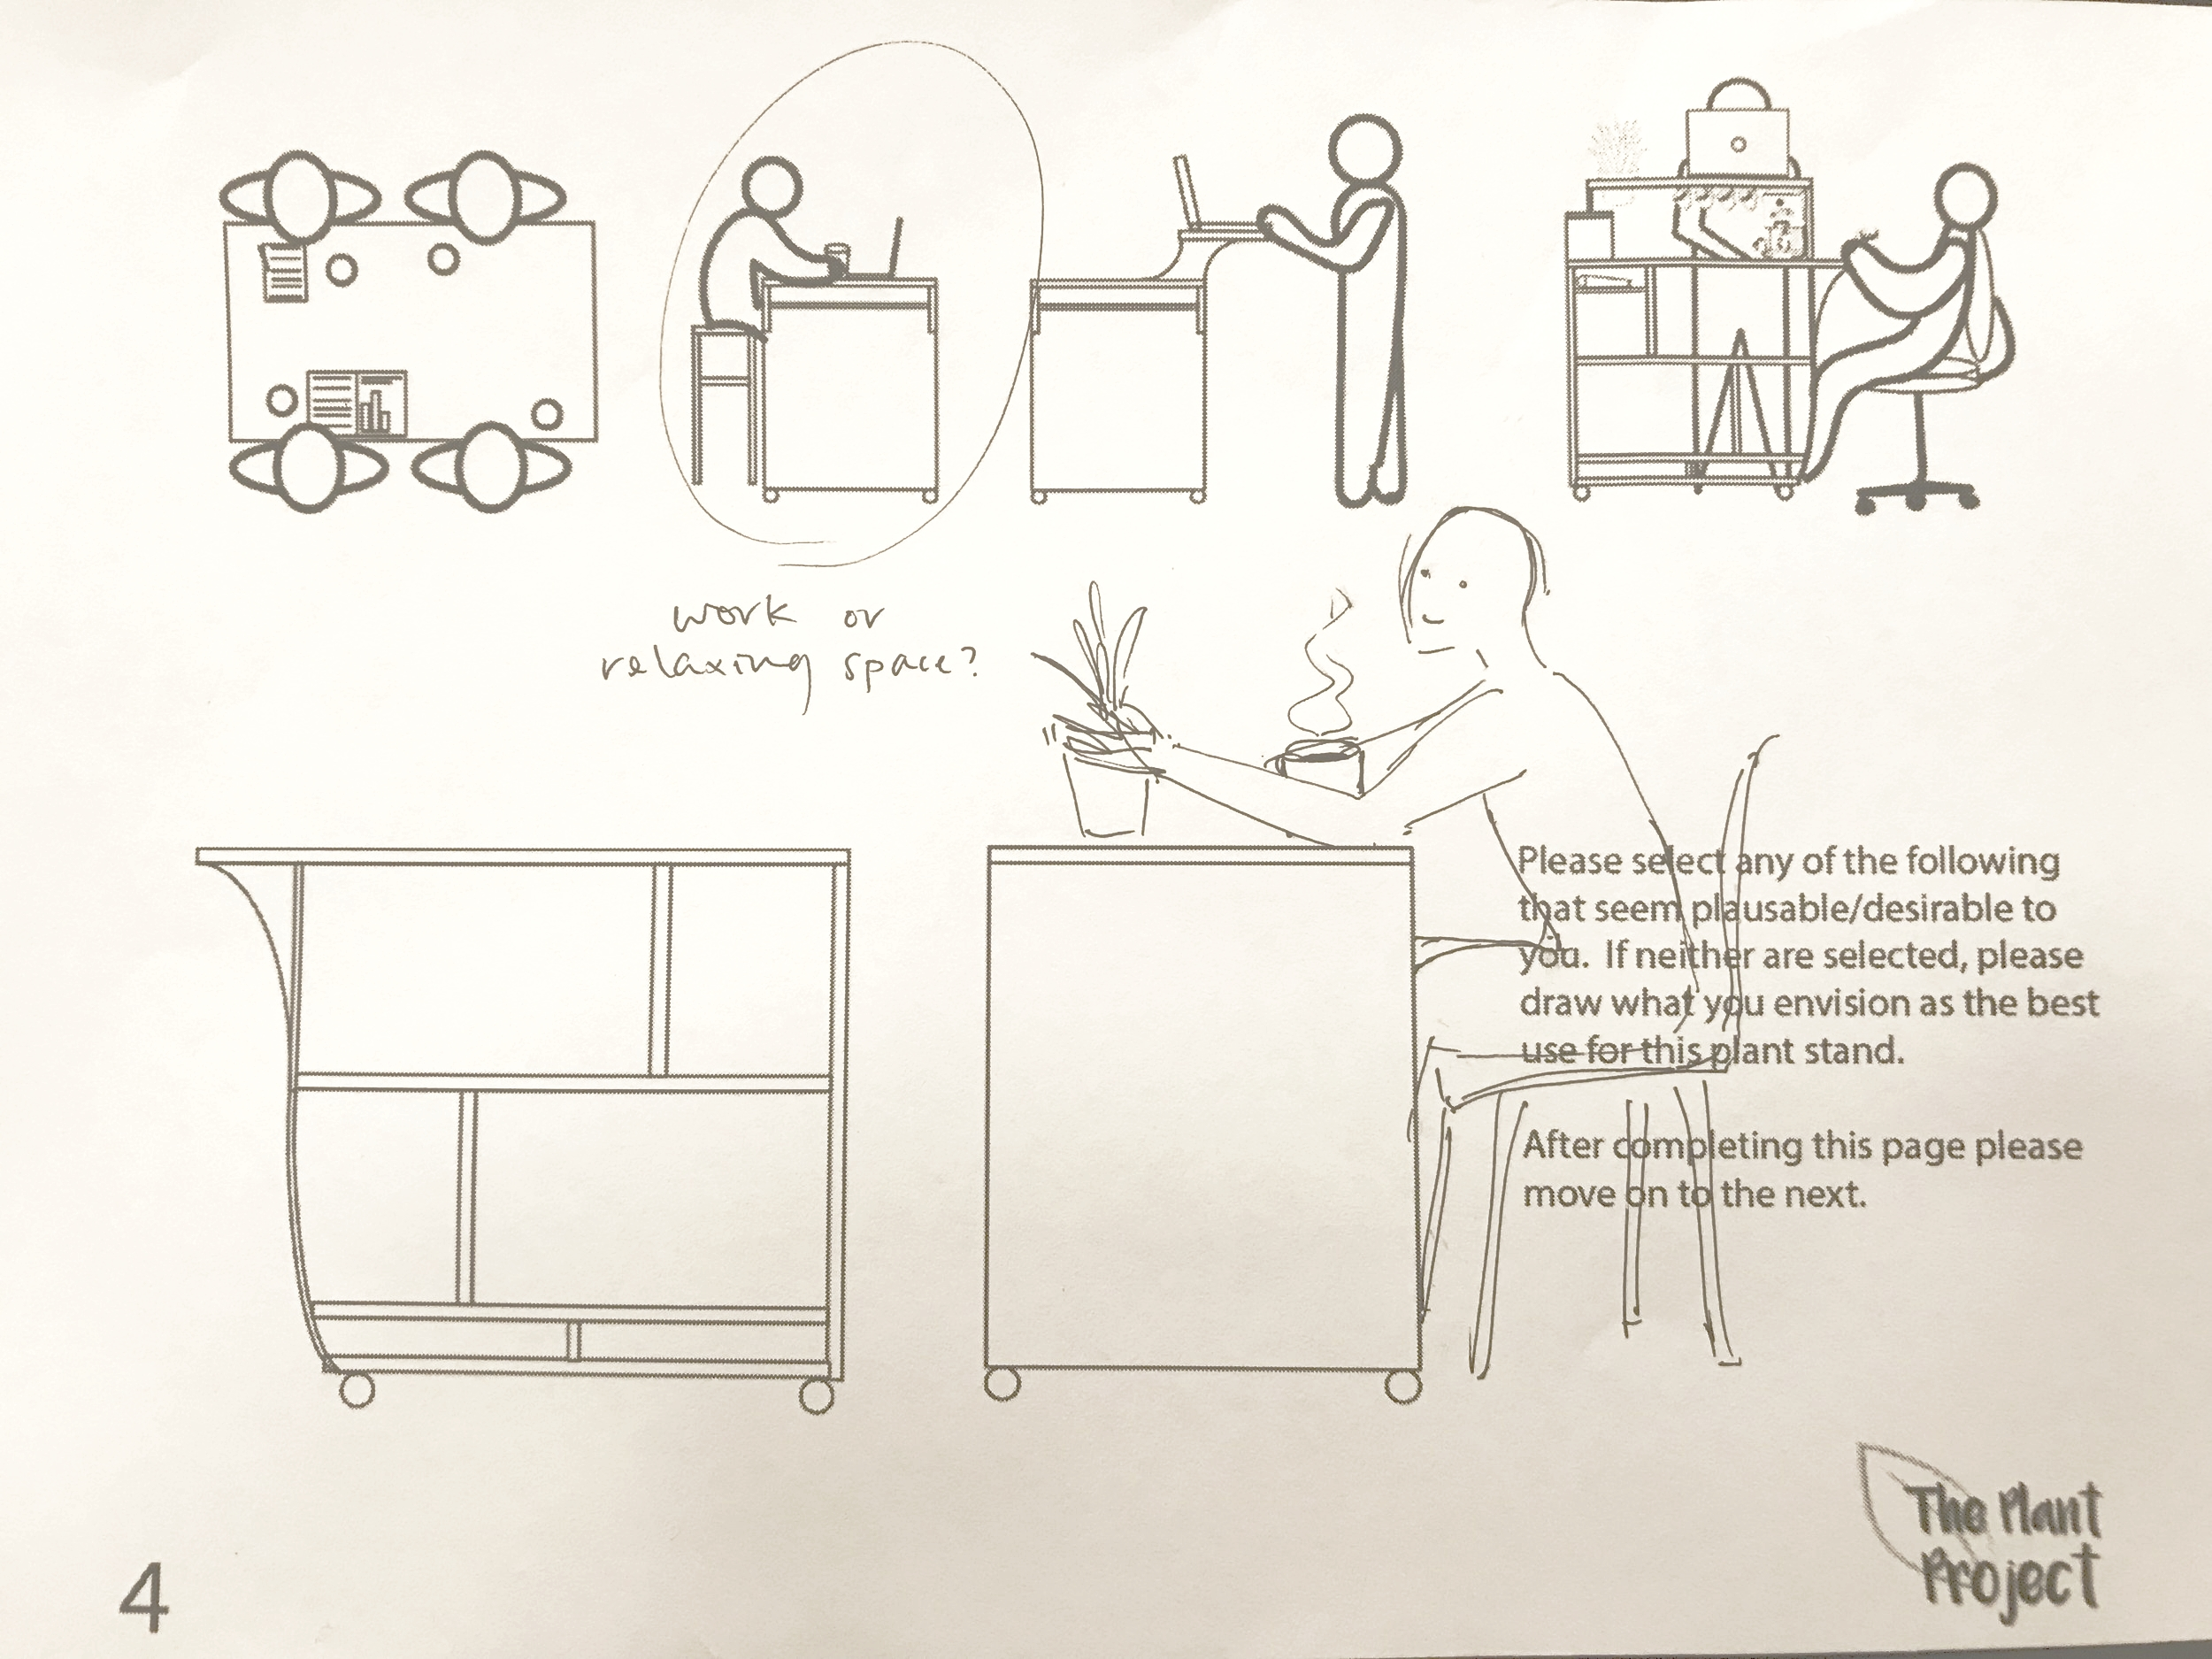 Finding the Potential - After sending out another form about ideal interactions with the cart I found that people had a desire to be able to sit and engage with the items or plants at the cart for a longer time.